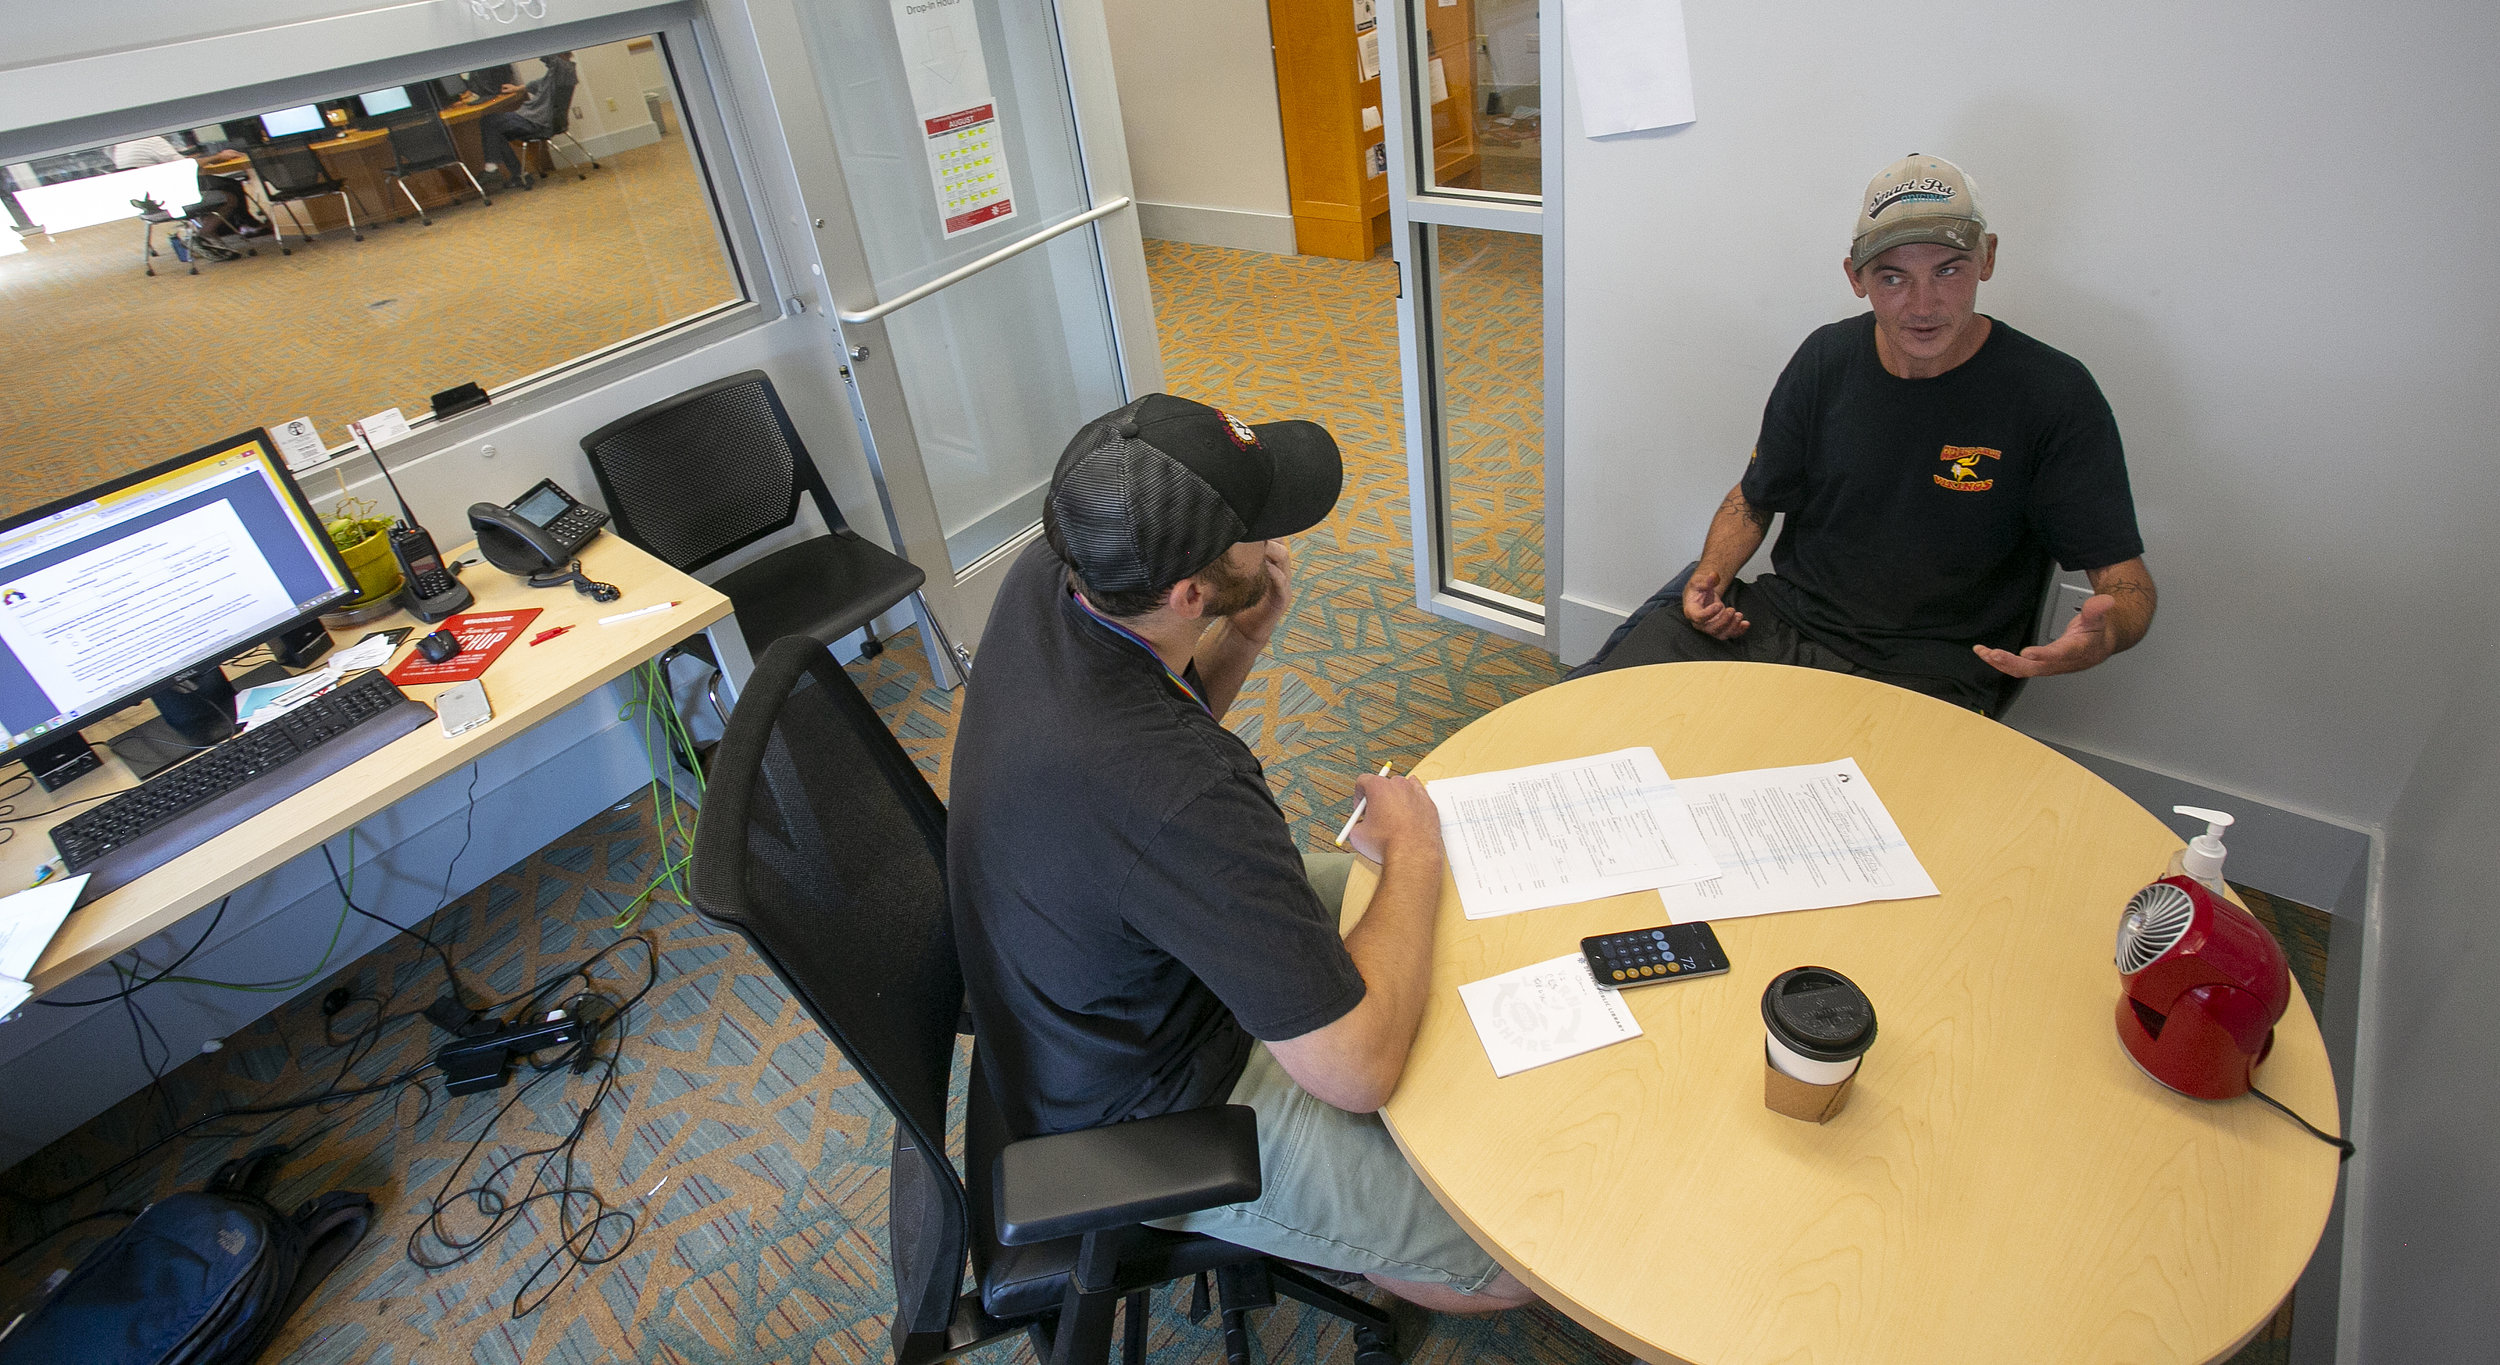 Matt Glover  administers the VI-SPDAT test to James Whitchurch. Whitchurch became homeless after being released from prison for marijuana possession in Ohio. After his release, he faced over $25,000 in back child support for the time he spent behind bars. He struggles to earn enough money to get his own apartment due to extensive garnishment of his wages. The VI-SPDAT — Vulnerability Index Service Prioritization Decision Assistance Tool — is an interagency tool used to determine risk and prioritization in helping individuals access services. By participating in the VI-SPDAT, the DPL Community Resource Team is able to help individuals enroll in the city-wide resources available to unhoused individuals.